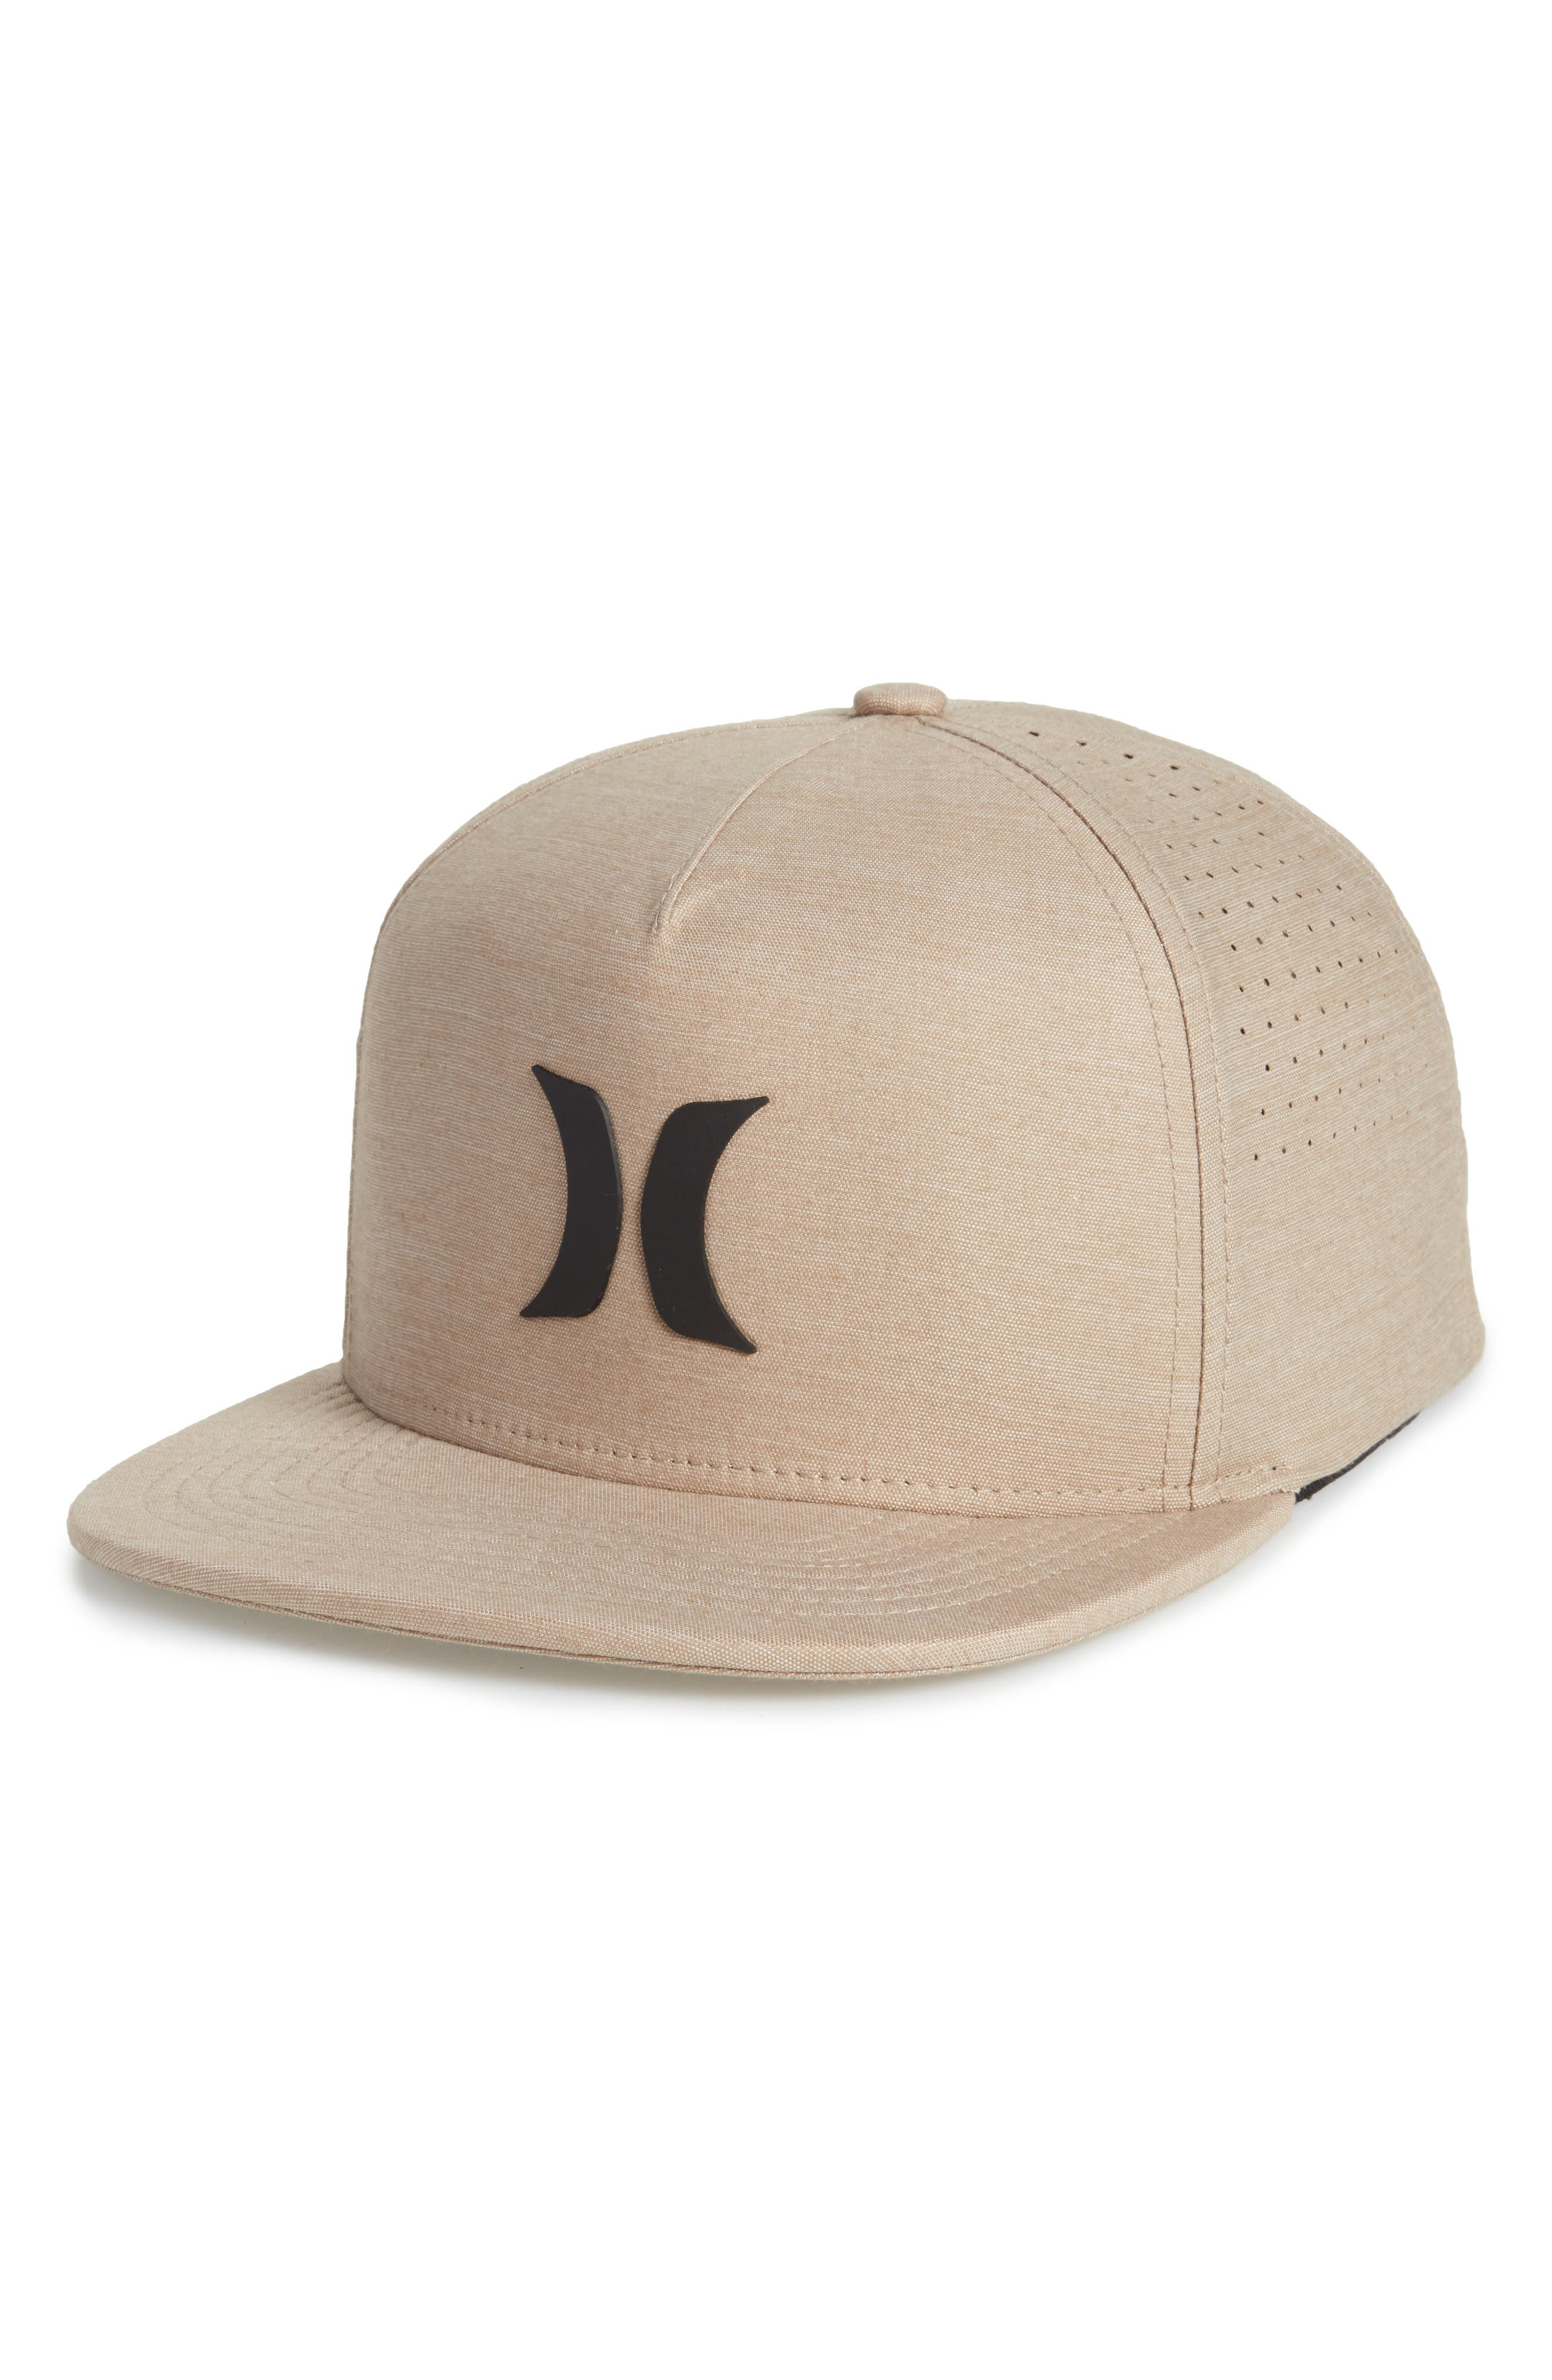 Alternate Image 1 Selected - Hurley Dri-FIT Icon 4.0 Ventilated Logo Cap